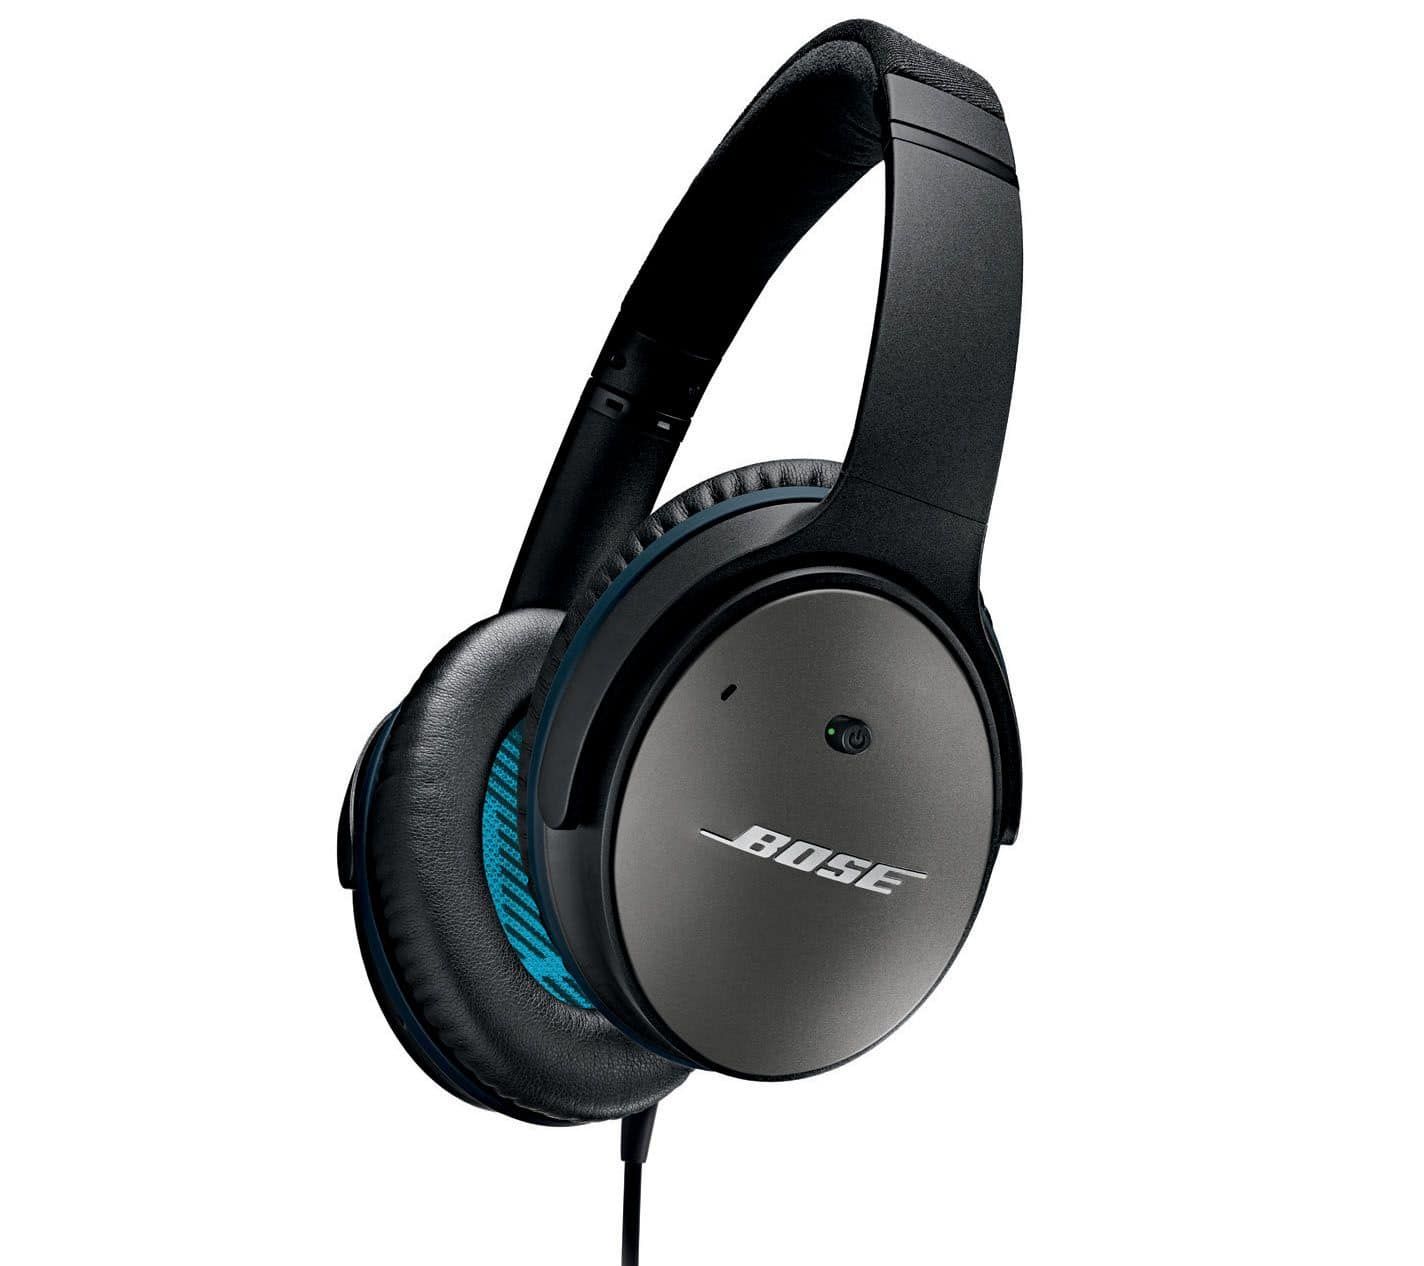 New QVC Customers: Bose QuietComfort 25 NC Headphones for